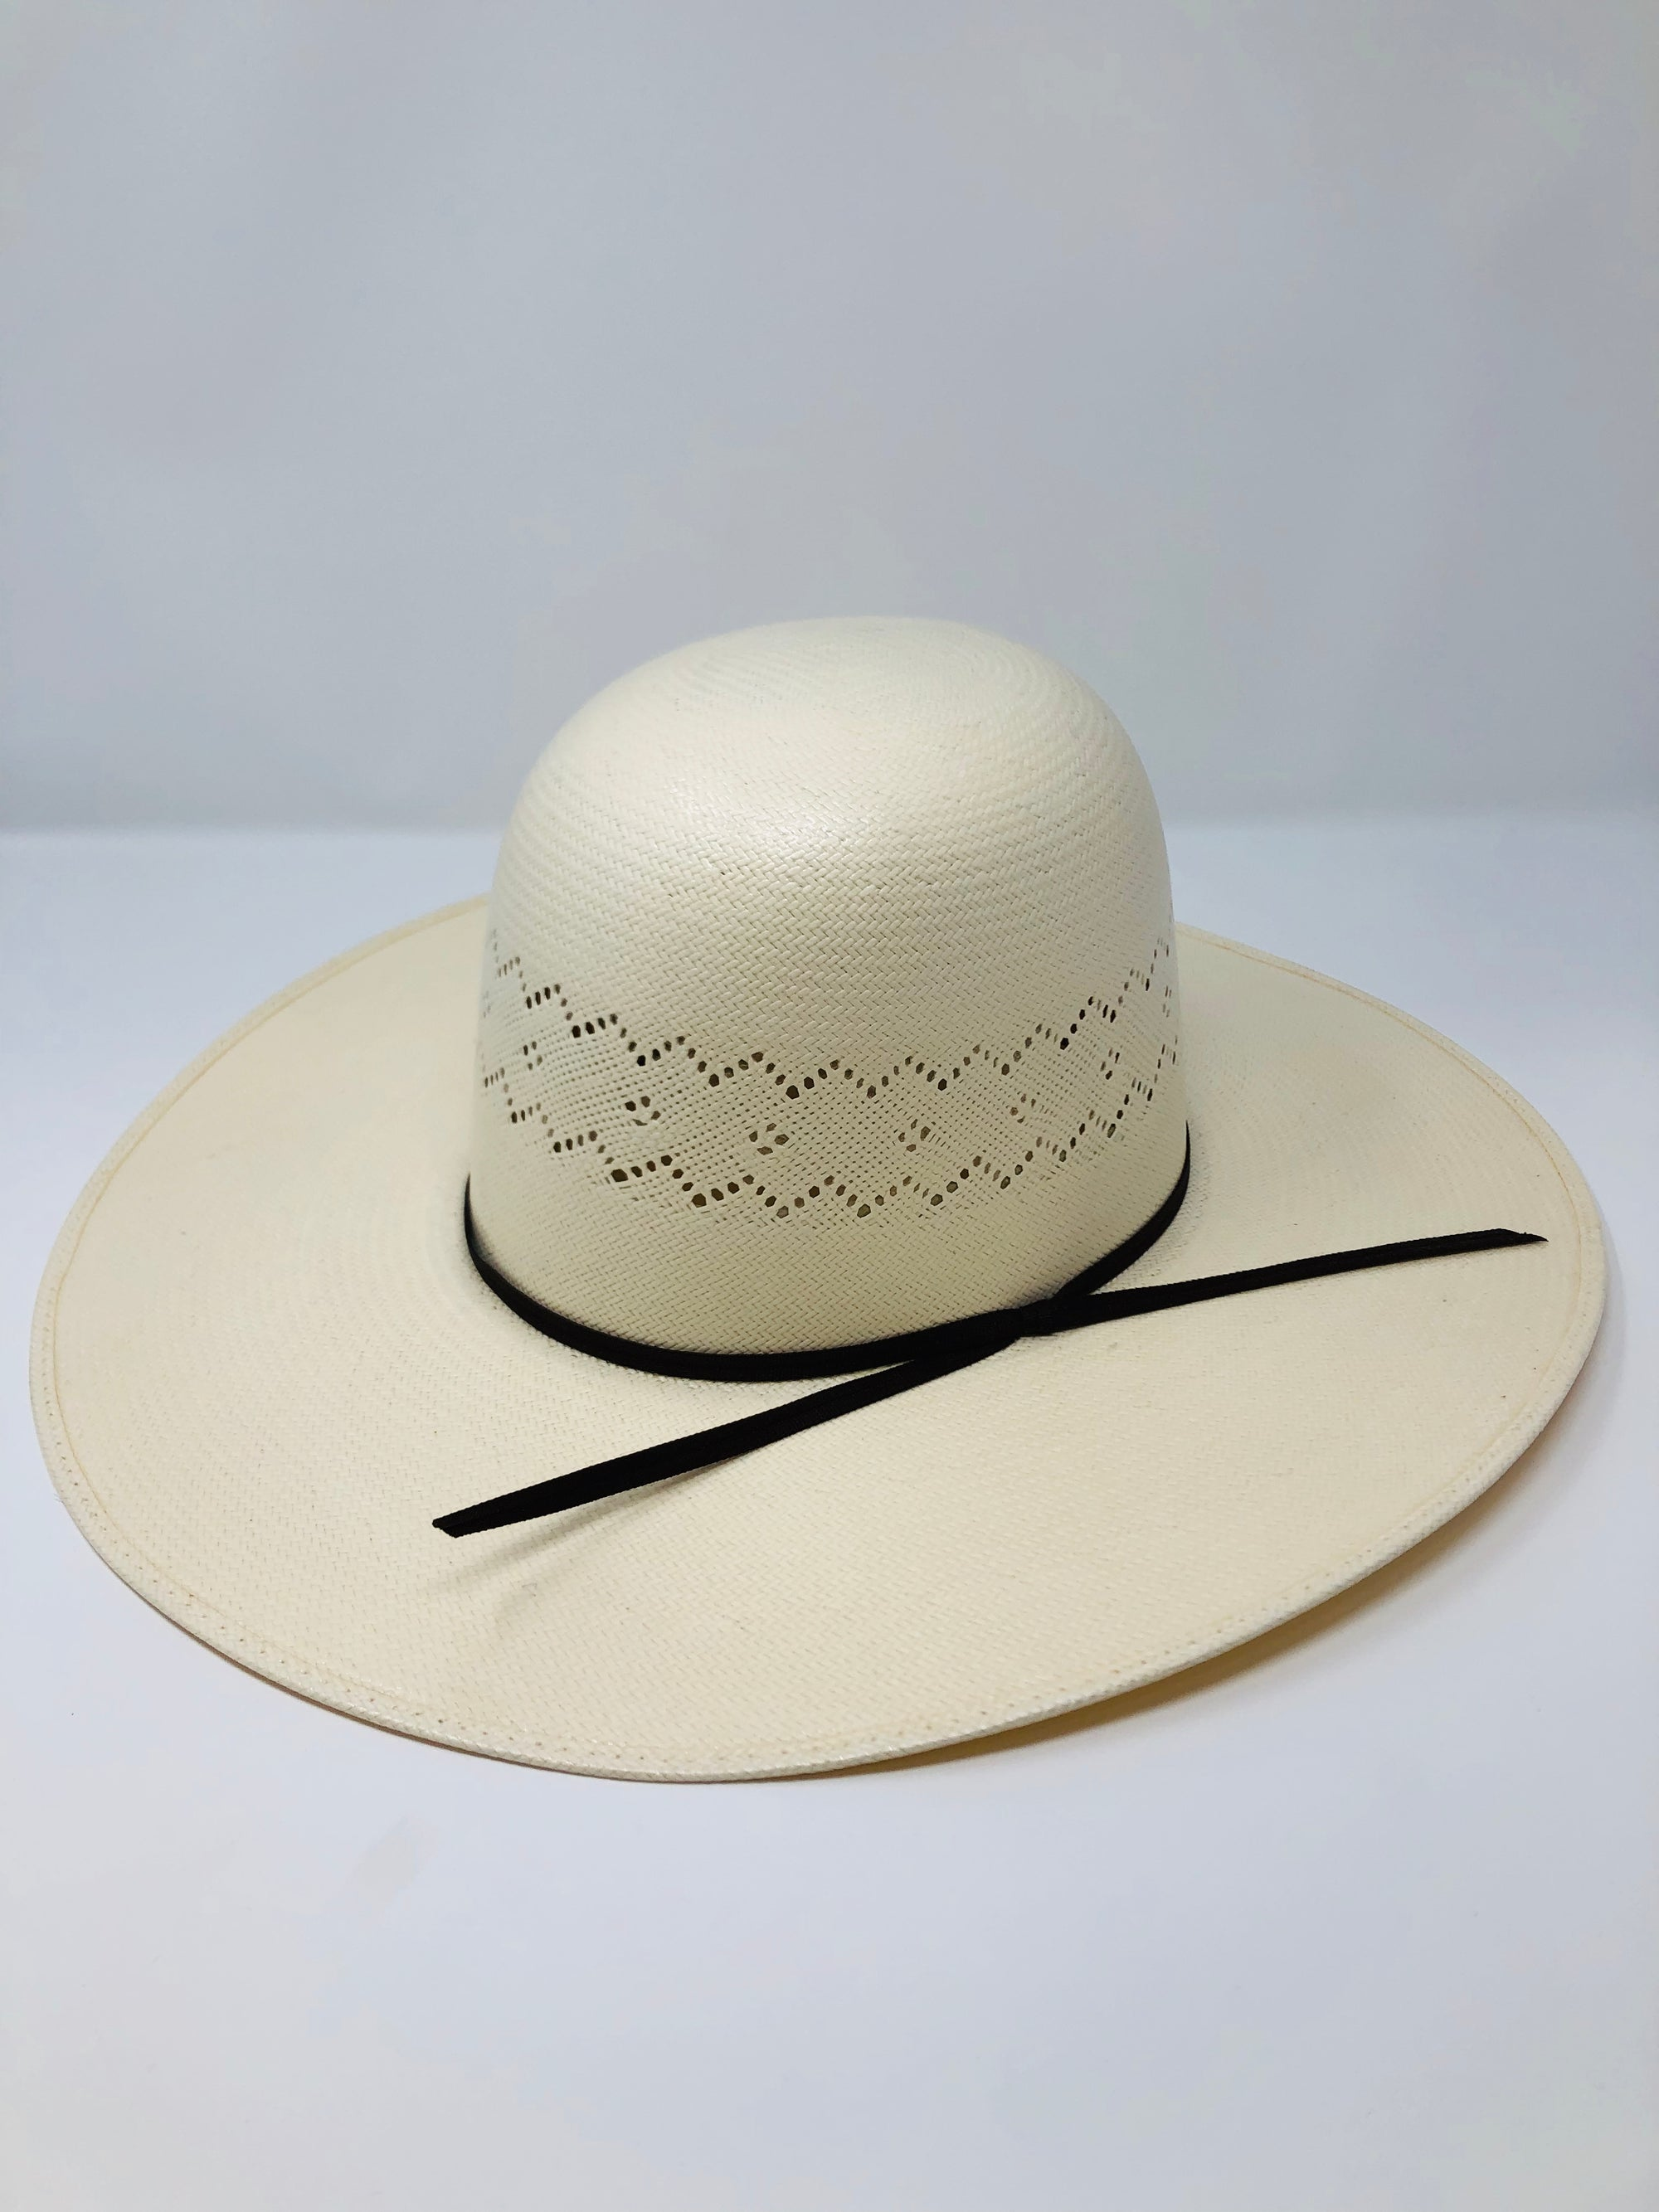 Alboum Hat Co. Aztec Straw Hat